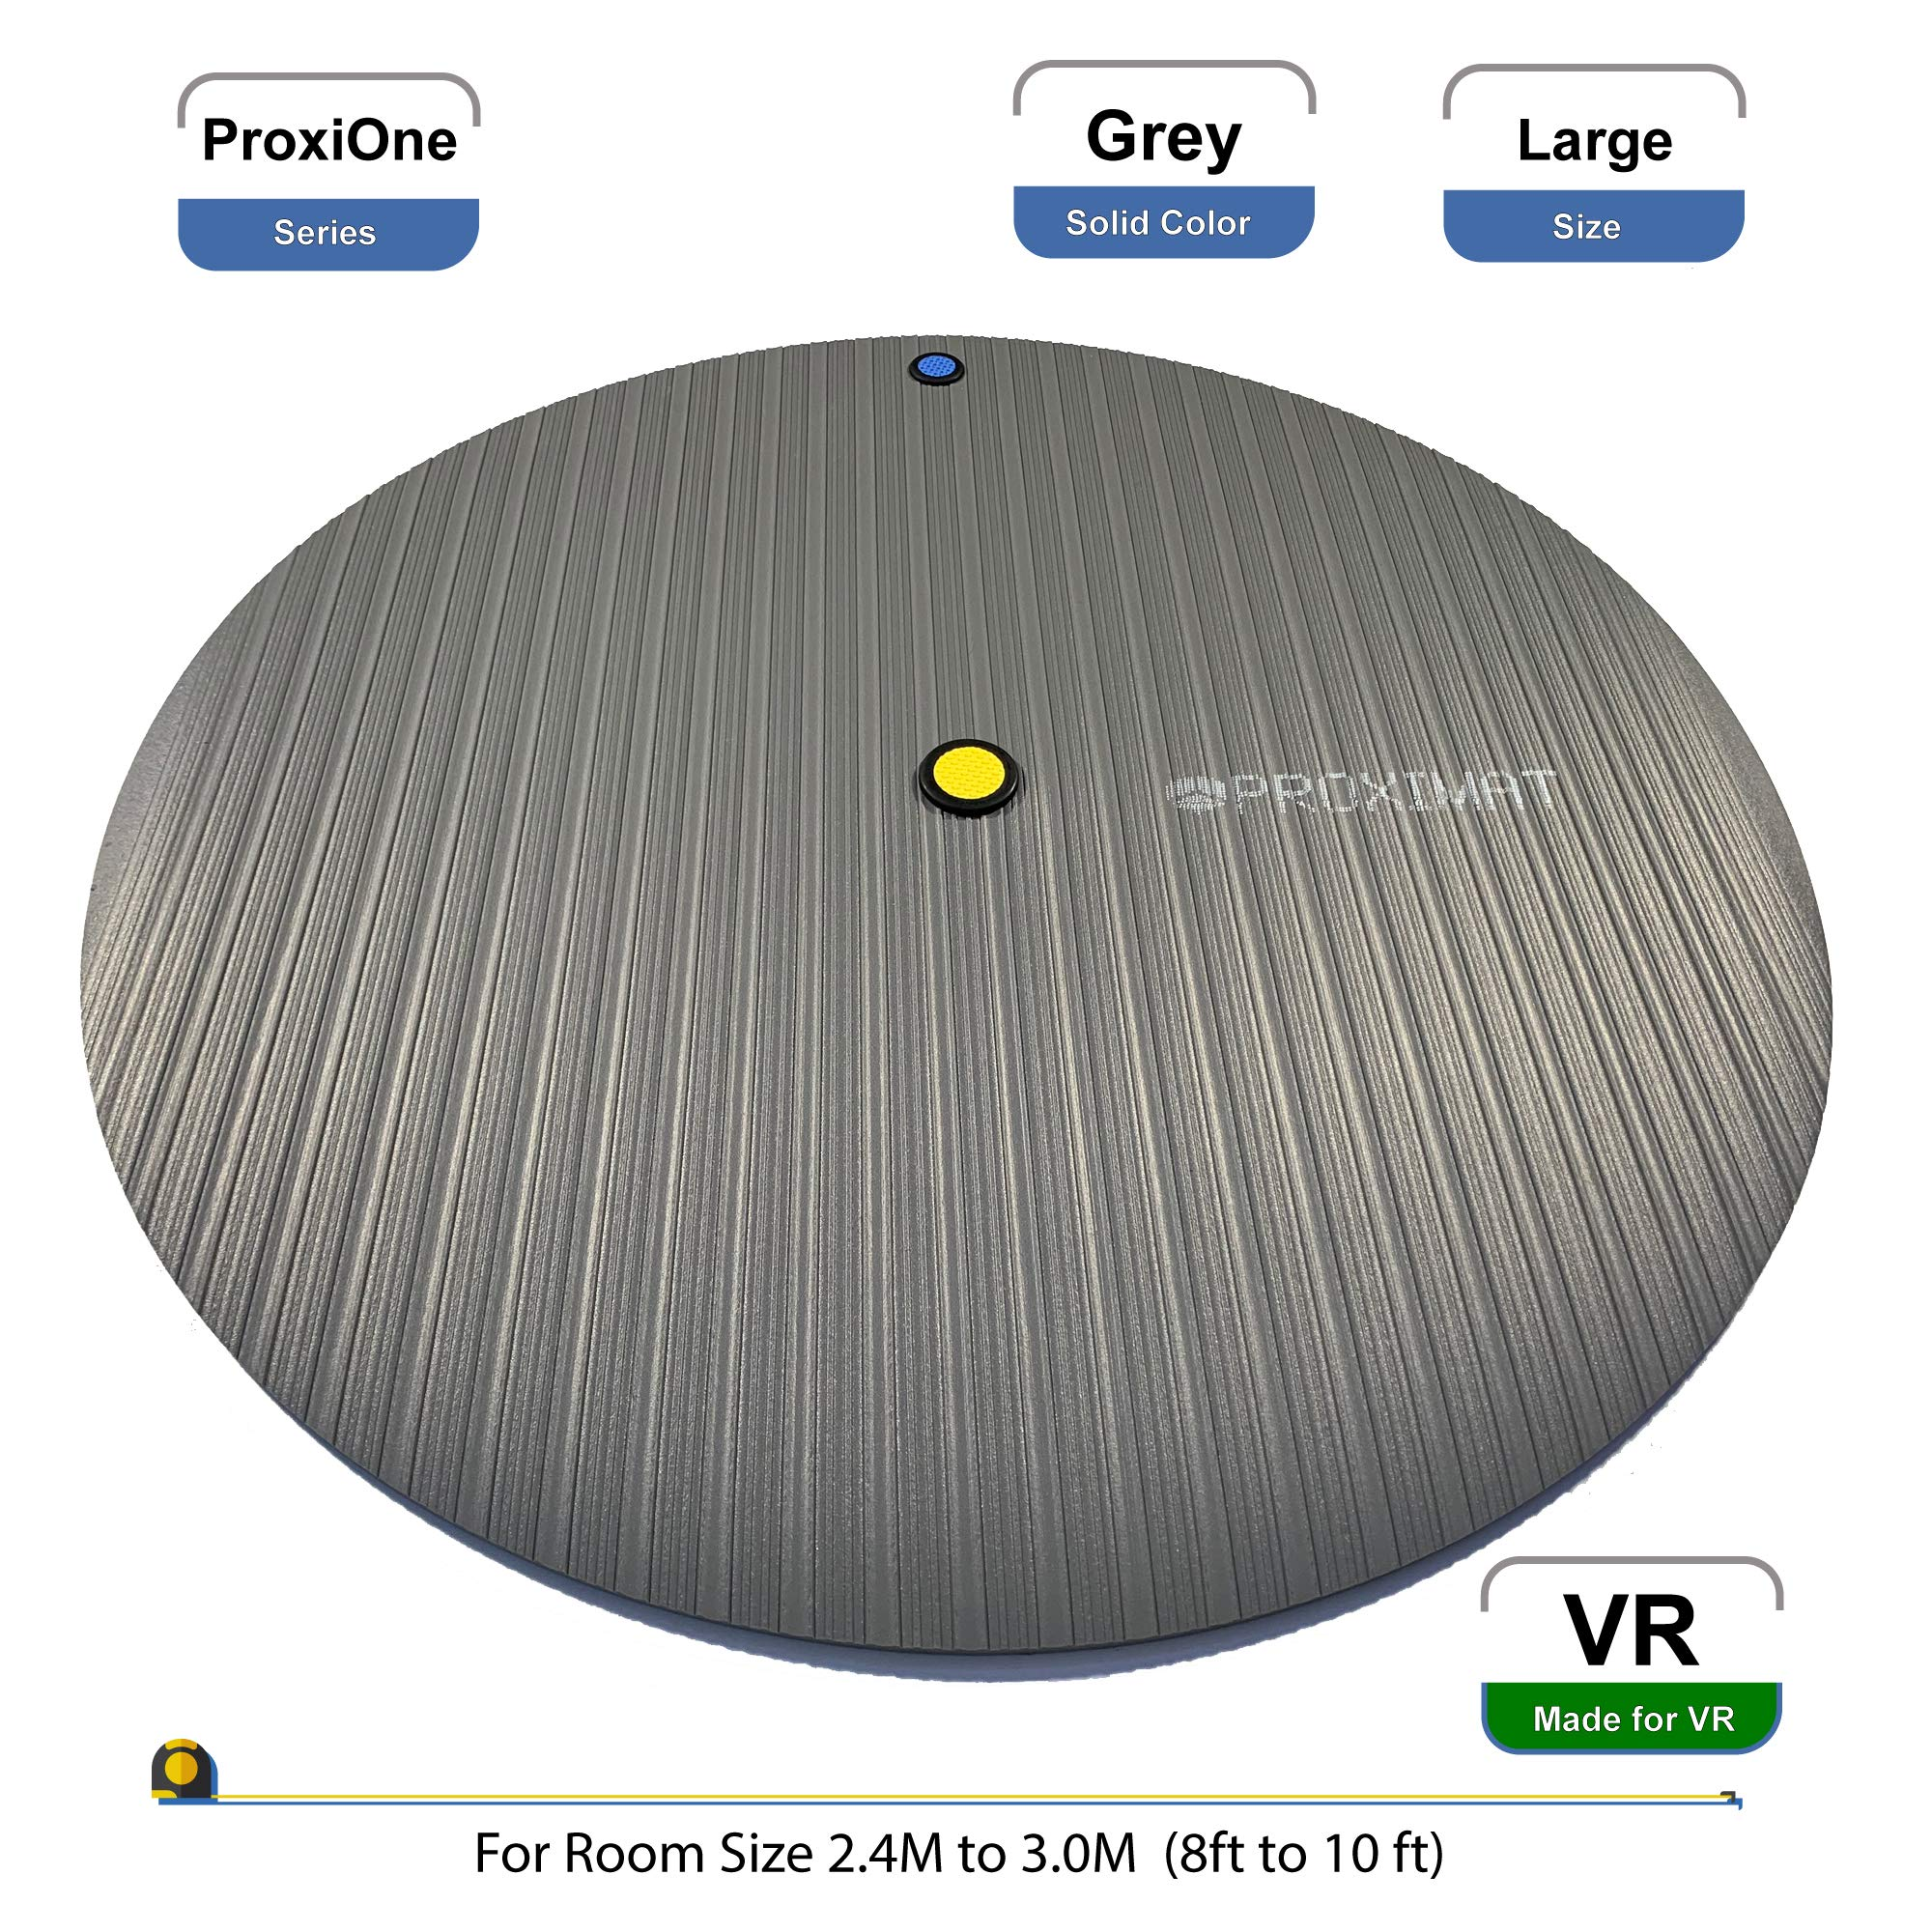 ProxiMat | ProxiOne | Grey | Large | VR Virtual Reality Chaperone Safety Mat | 8' to 10' Room Scale | for HTC Vive, Oculus Rift Quest, Playstation PSVR, Pimax 5K 8K, Valve Index Headset by Proximat